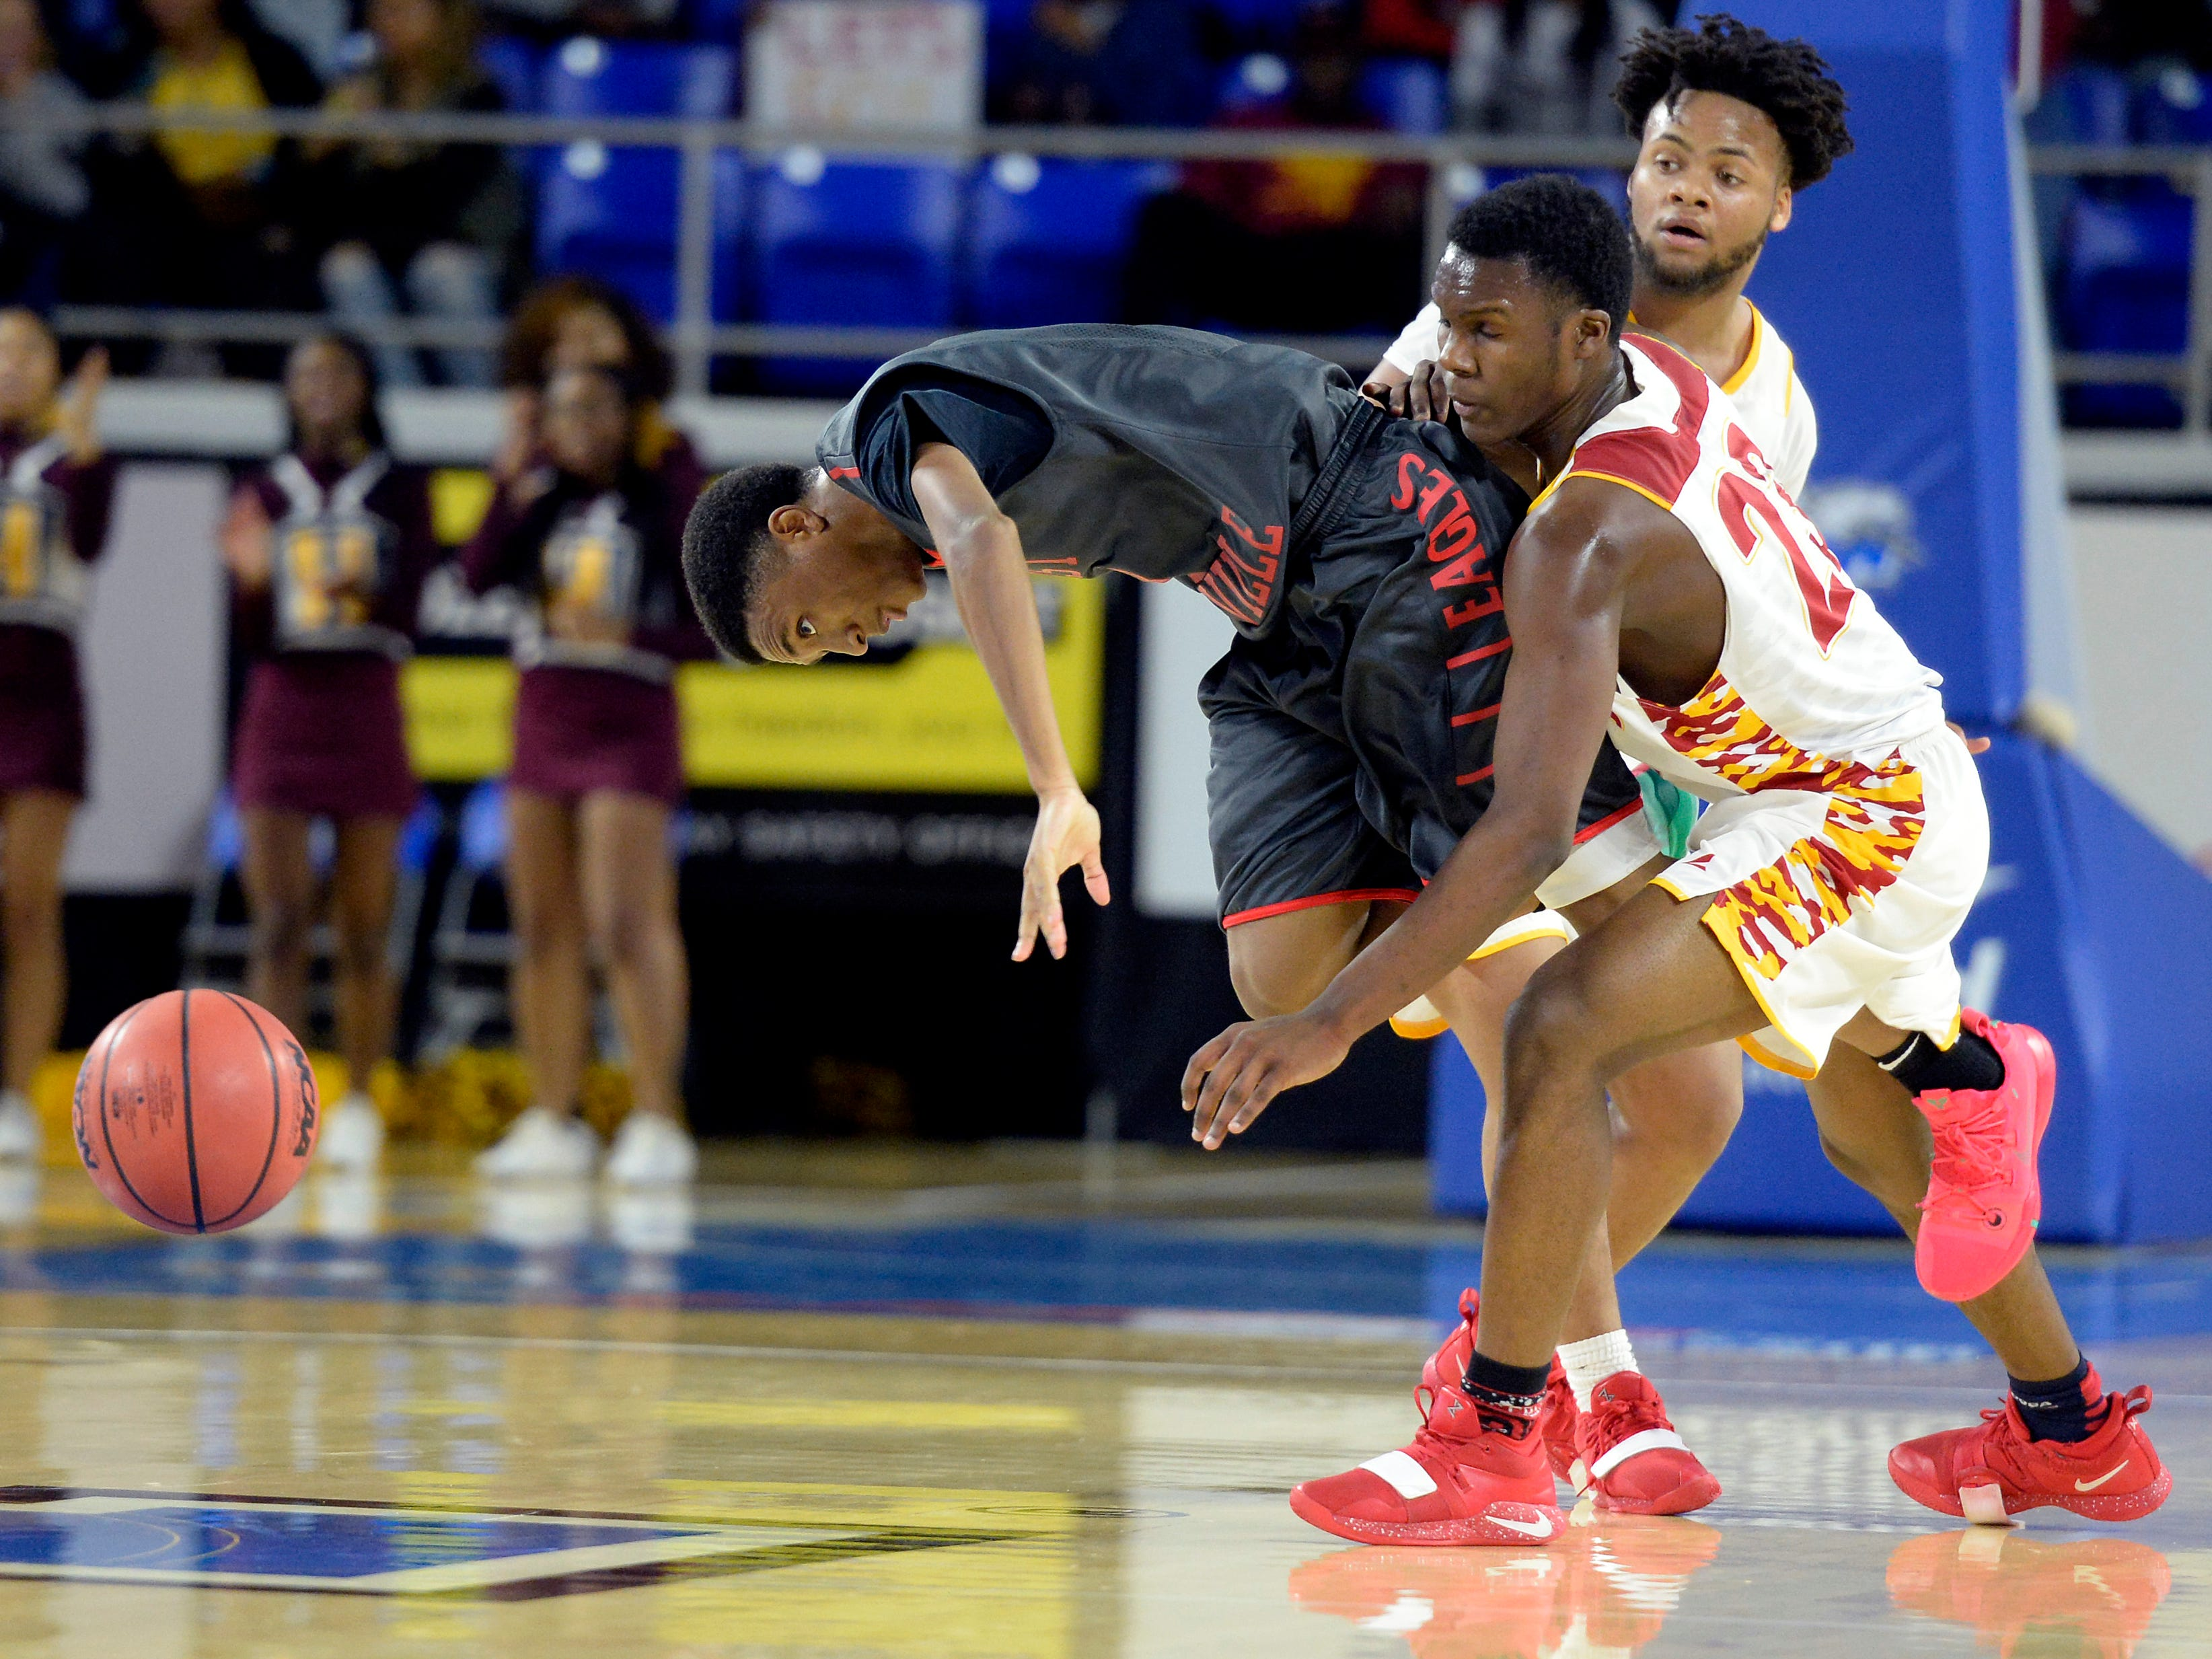 East Nashville guard Caleb Grimes, left, is fouled by Howard guard Calvin James (23) during the second half of an Class AA boys' state basketball quarterfinal game Wednesday, March 13, 2019, in Murfreesboro, Tenn. East Nashville won 78-75.